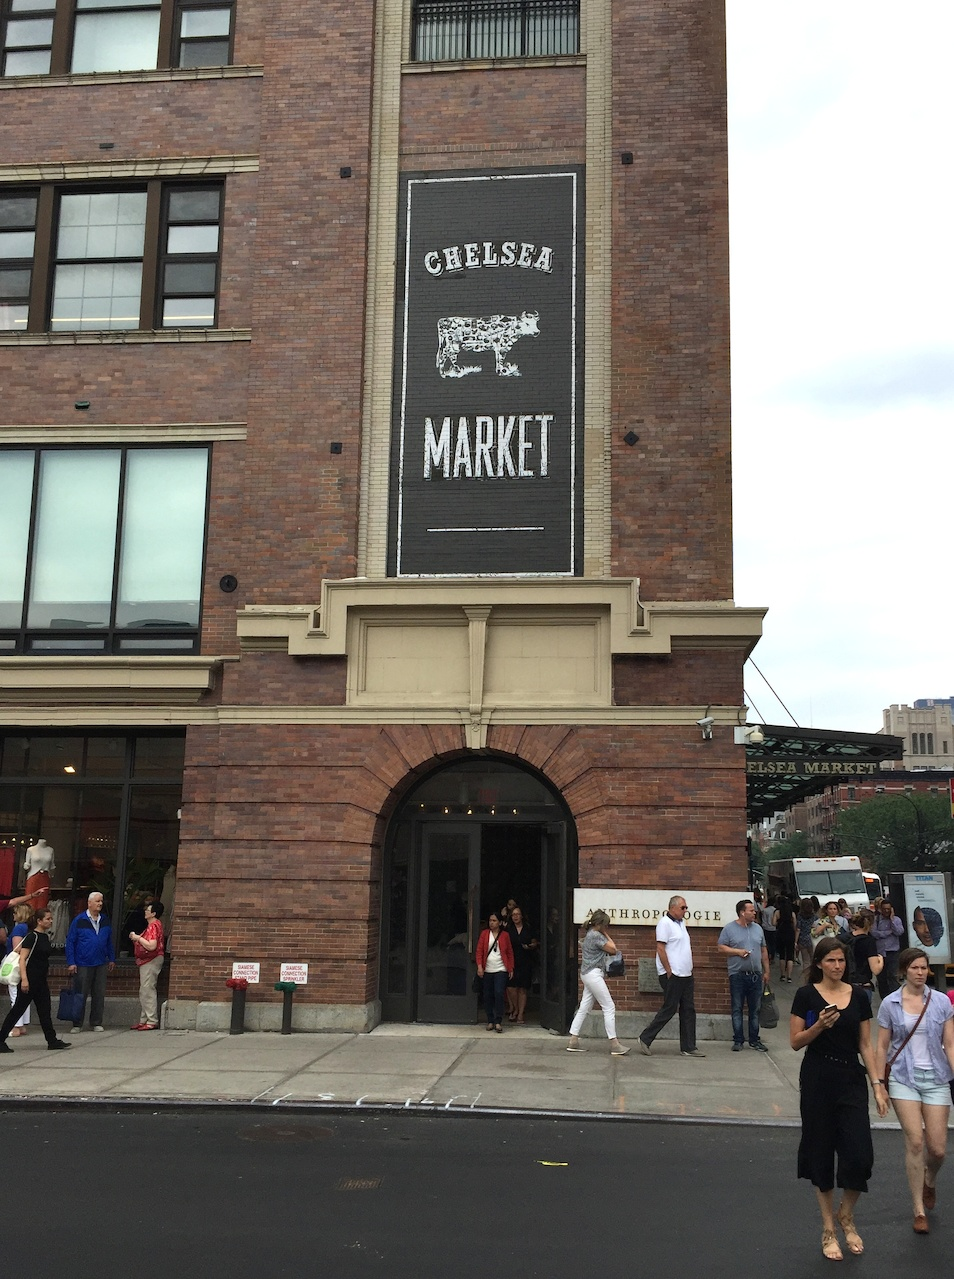 Chelsea Market offers blocks of indoor shops and restaurants to explore in an old factory. Trivia for Atlantans: the developer also did Ponce City Market.